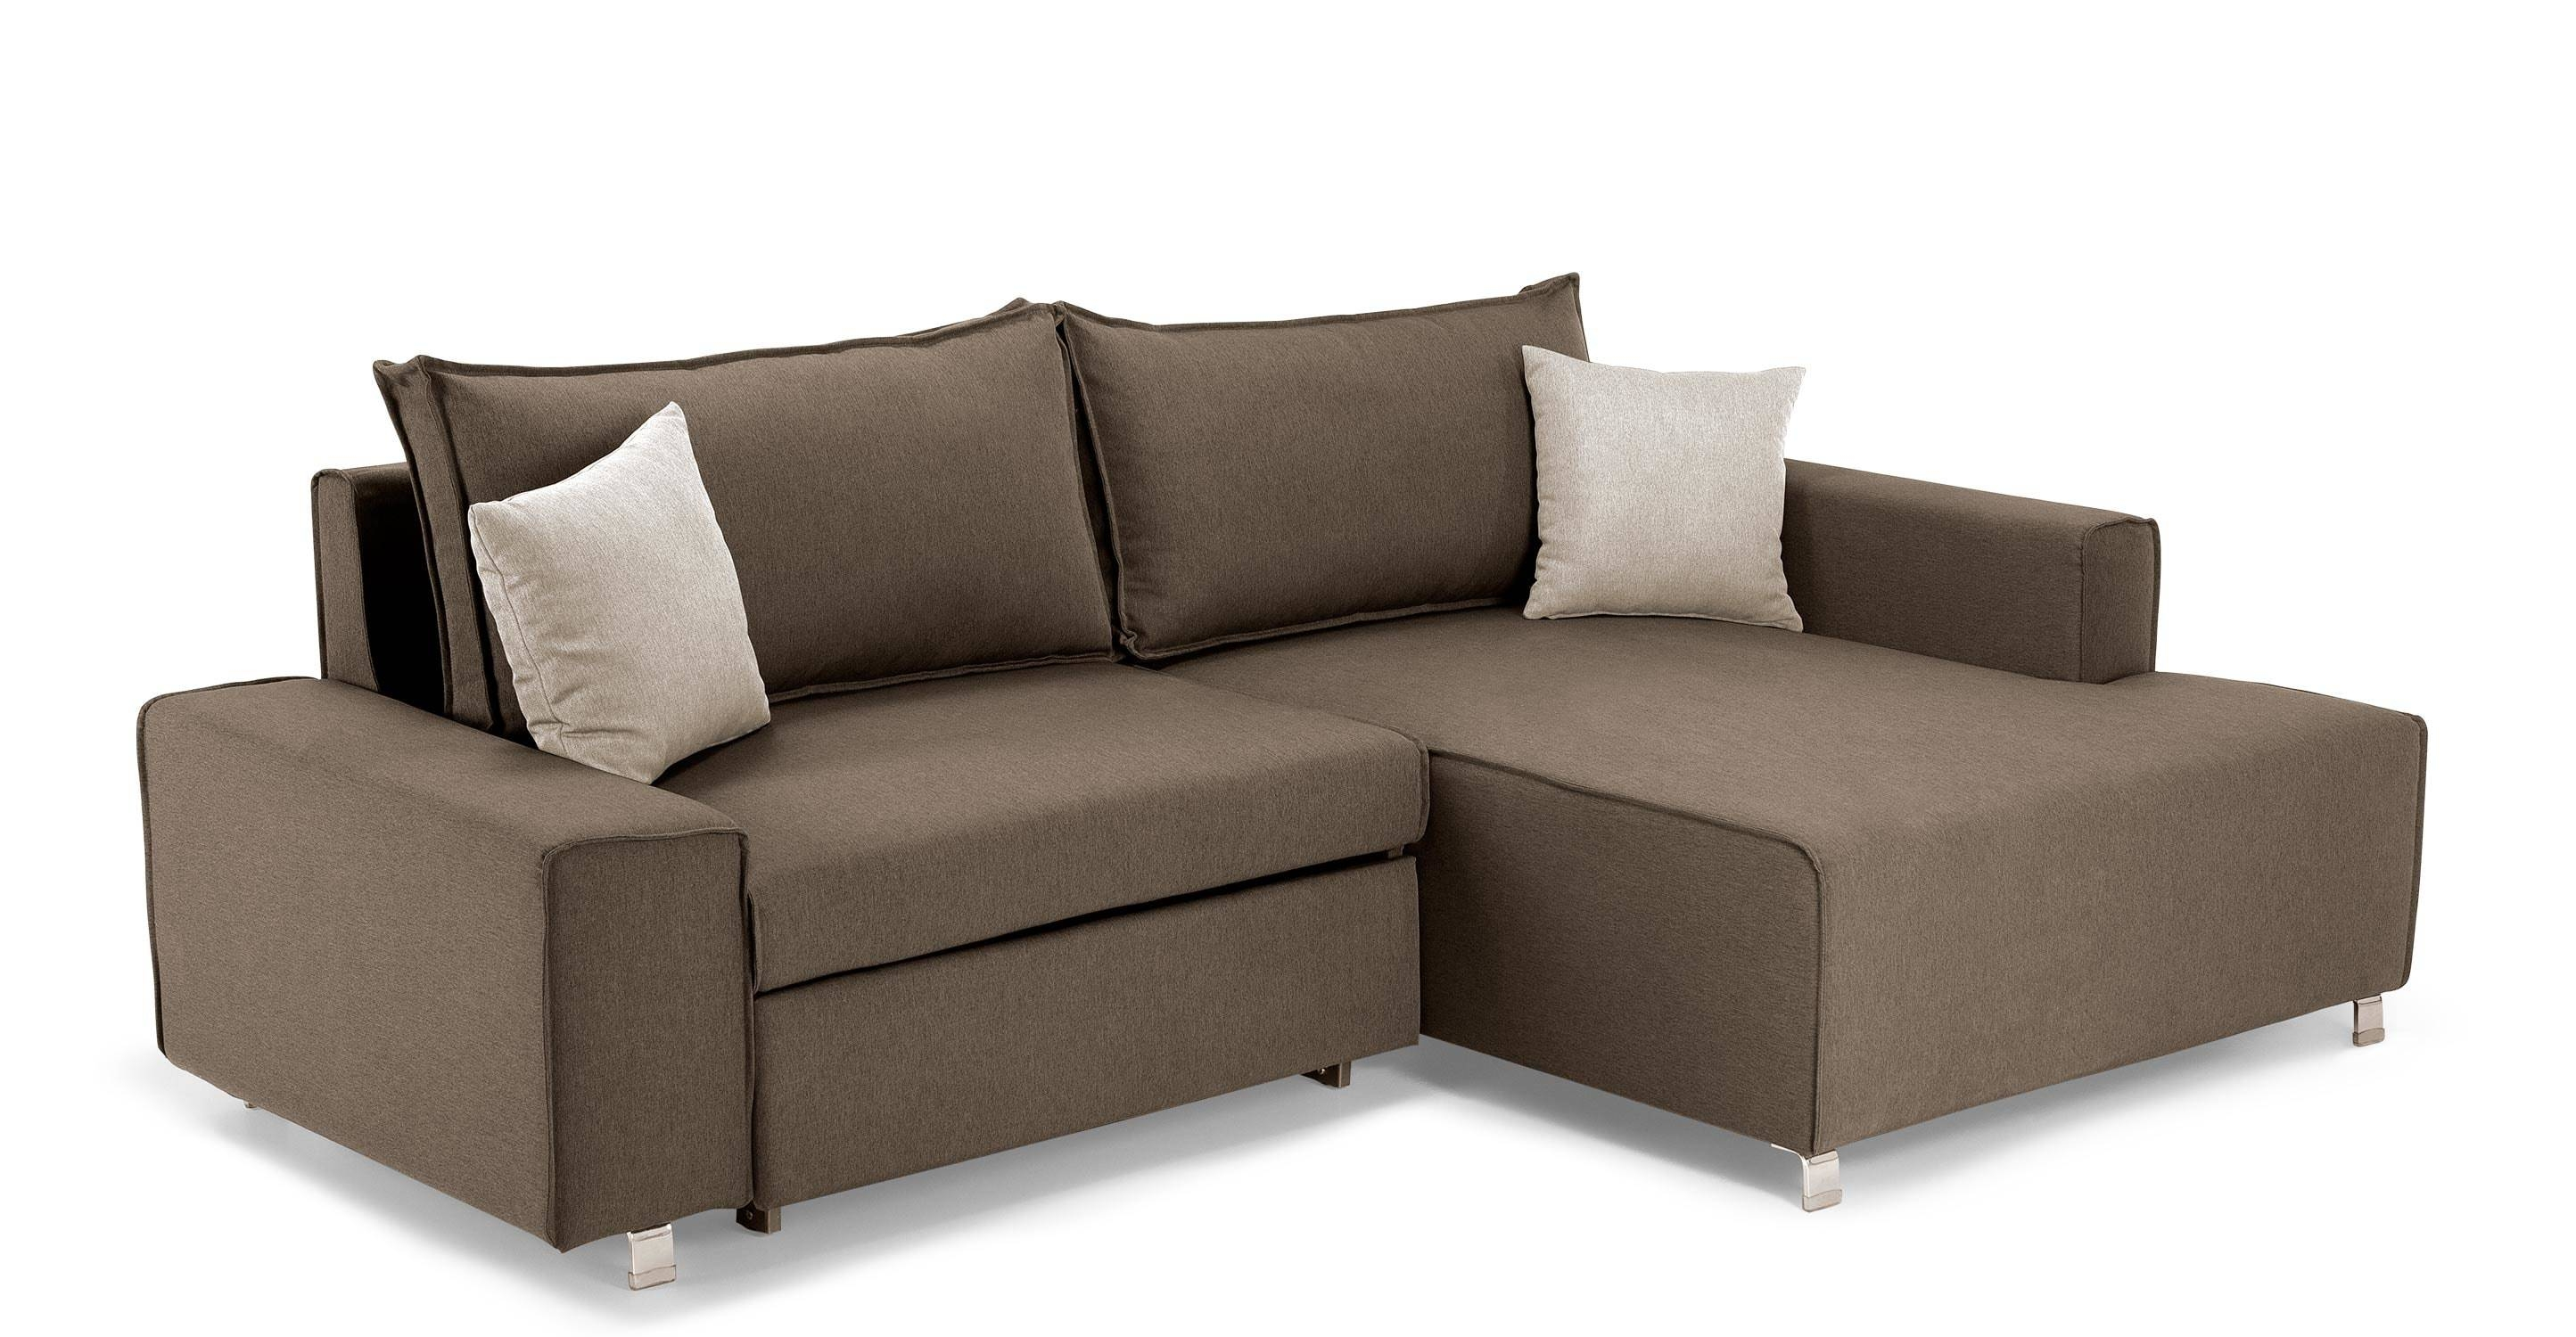 Sofas Center : Corner Sofa Beds Uk Cheap Birminghamcorner For with regard to Cheap Corner Sofa Bed (Image 25 of 30)